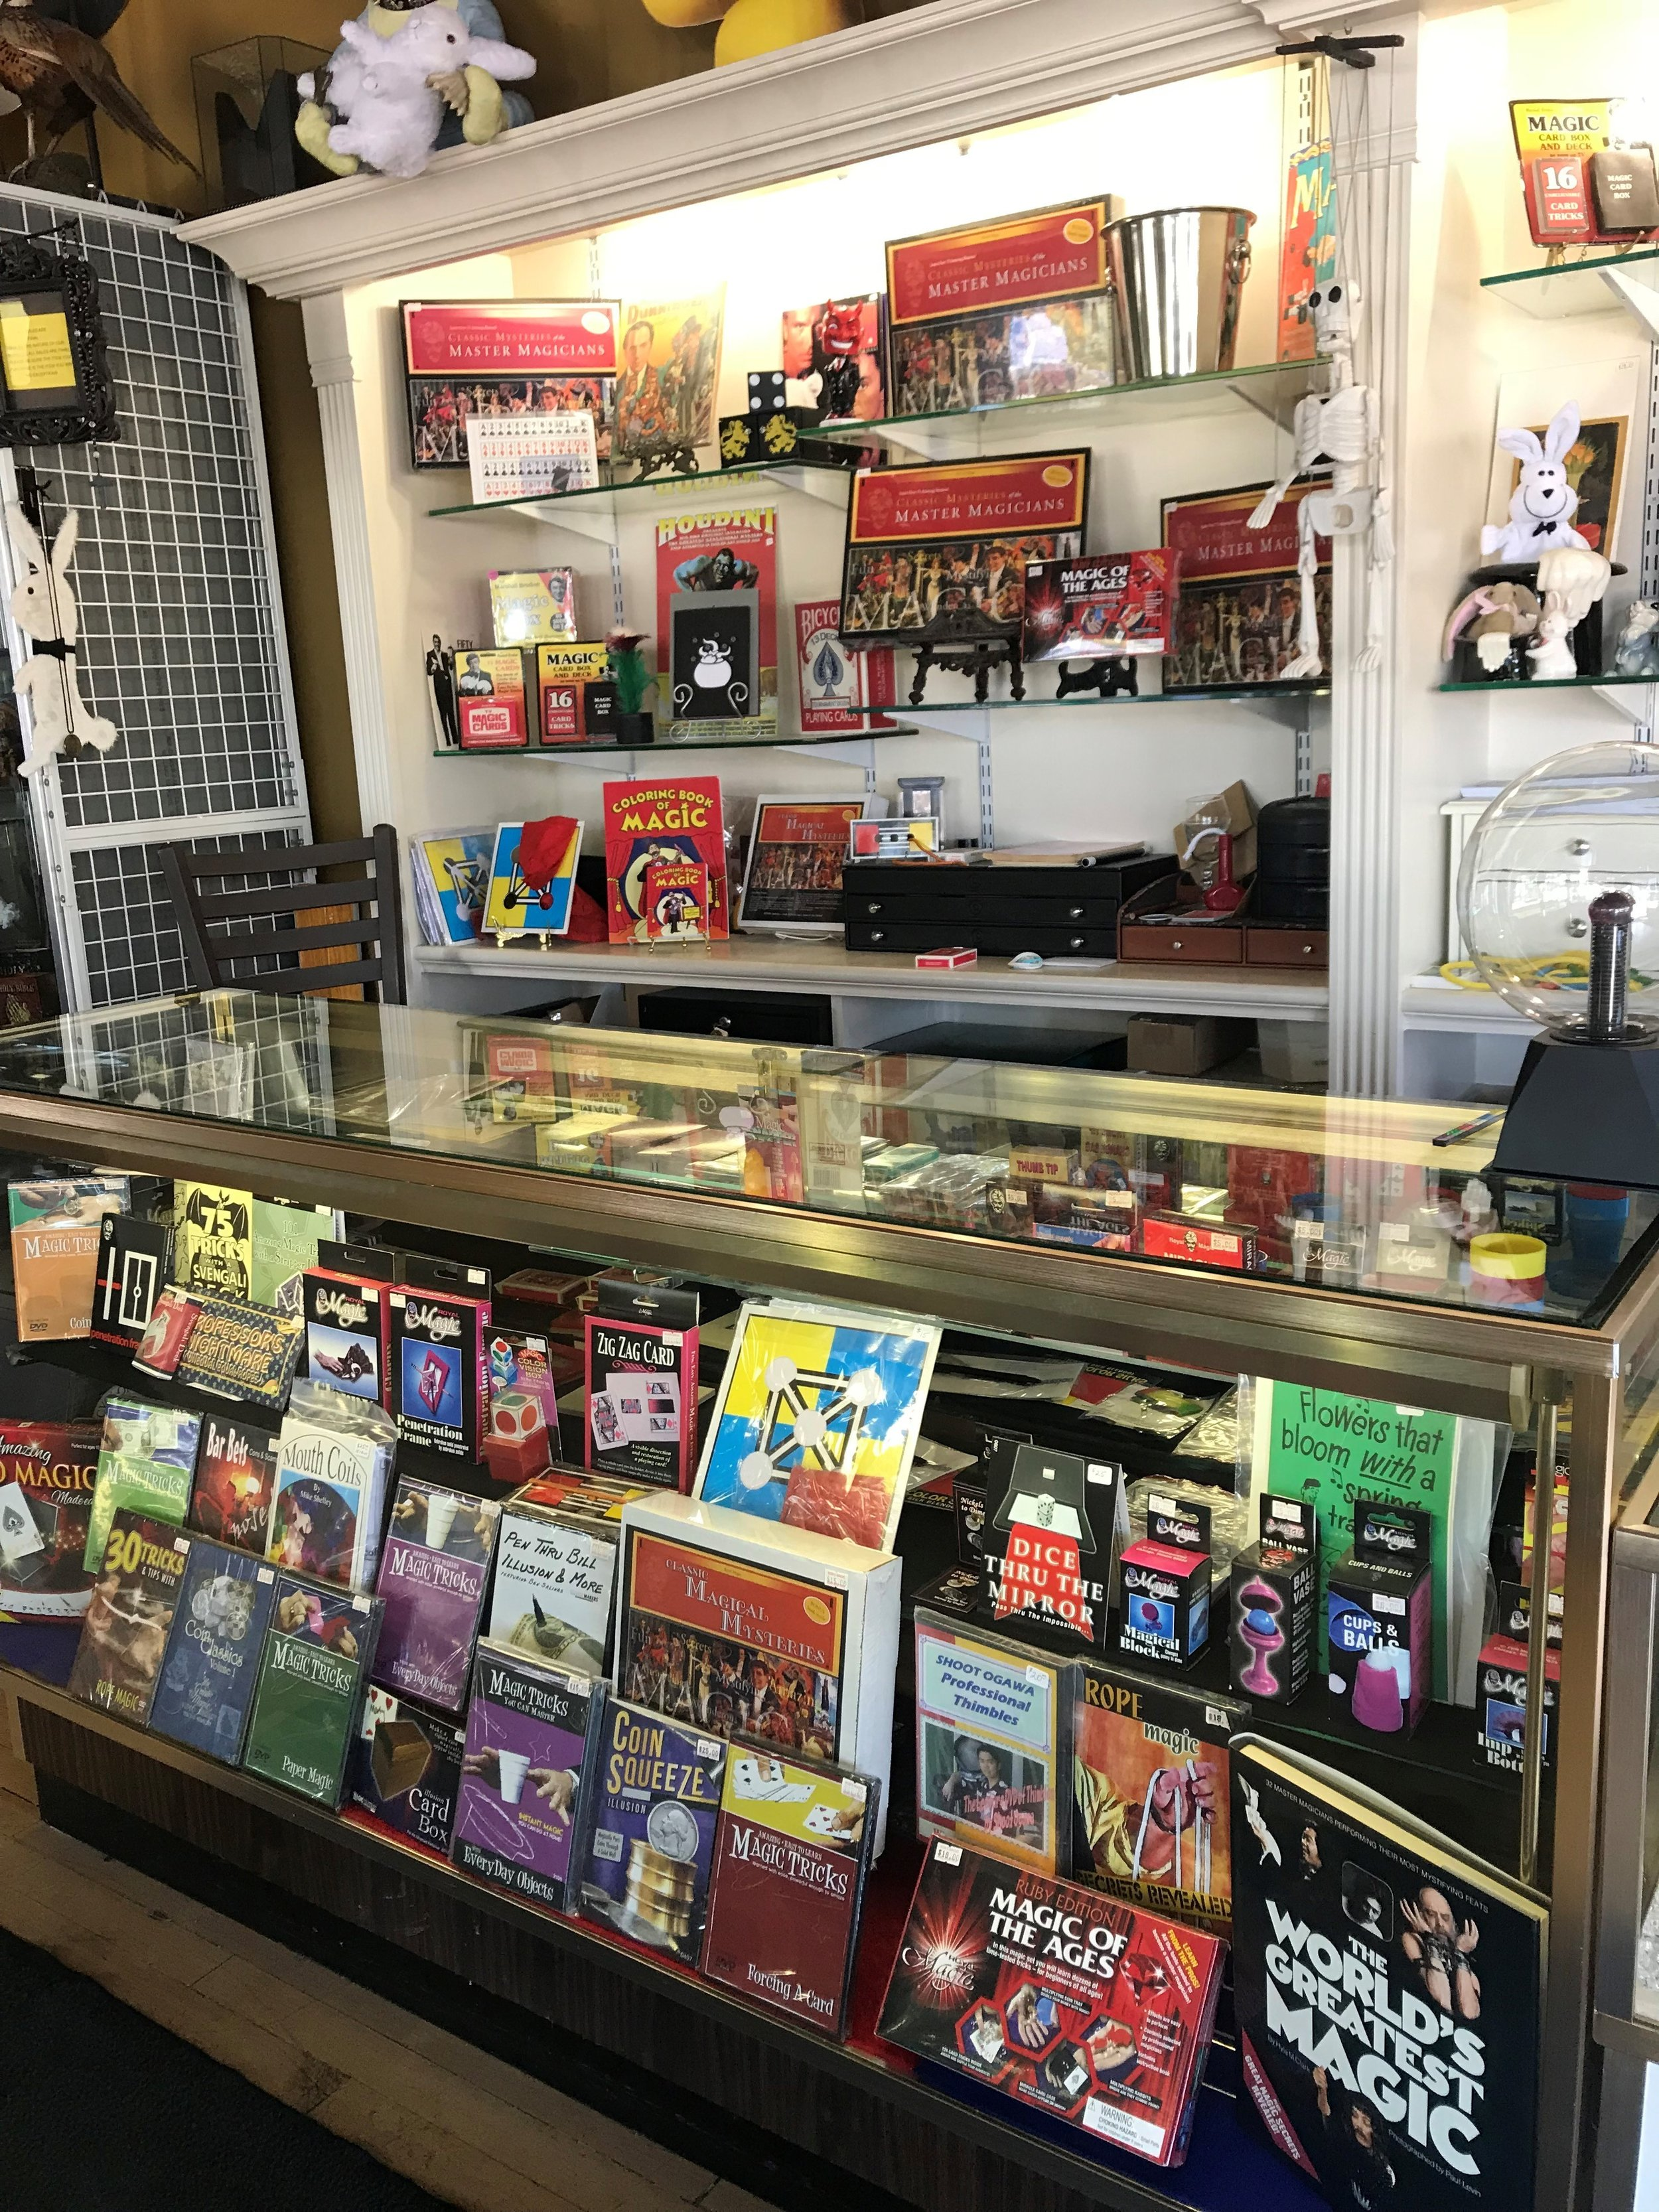 Illusions abound at Bob James Magic & Curiosities in downtown Elmhurst